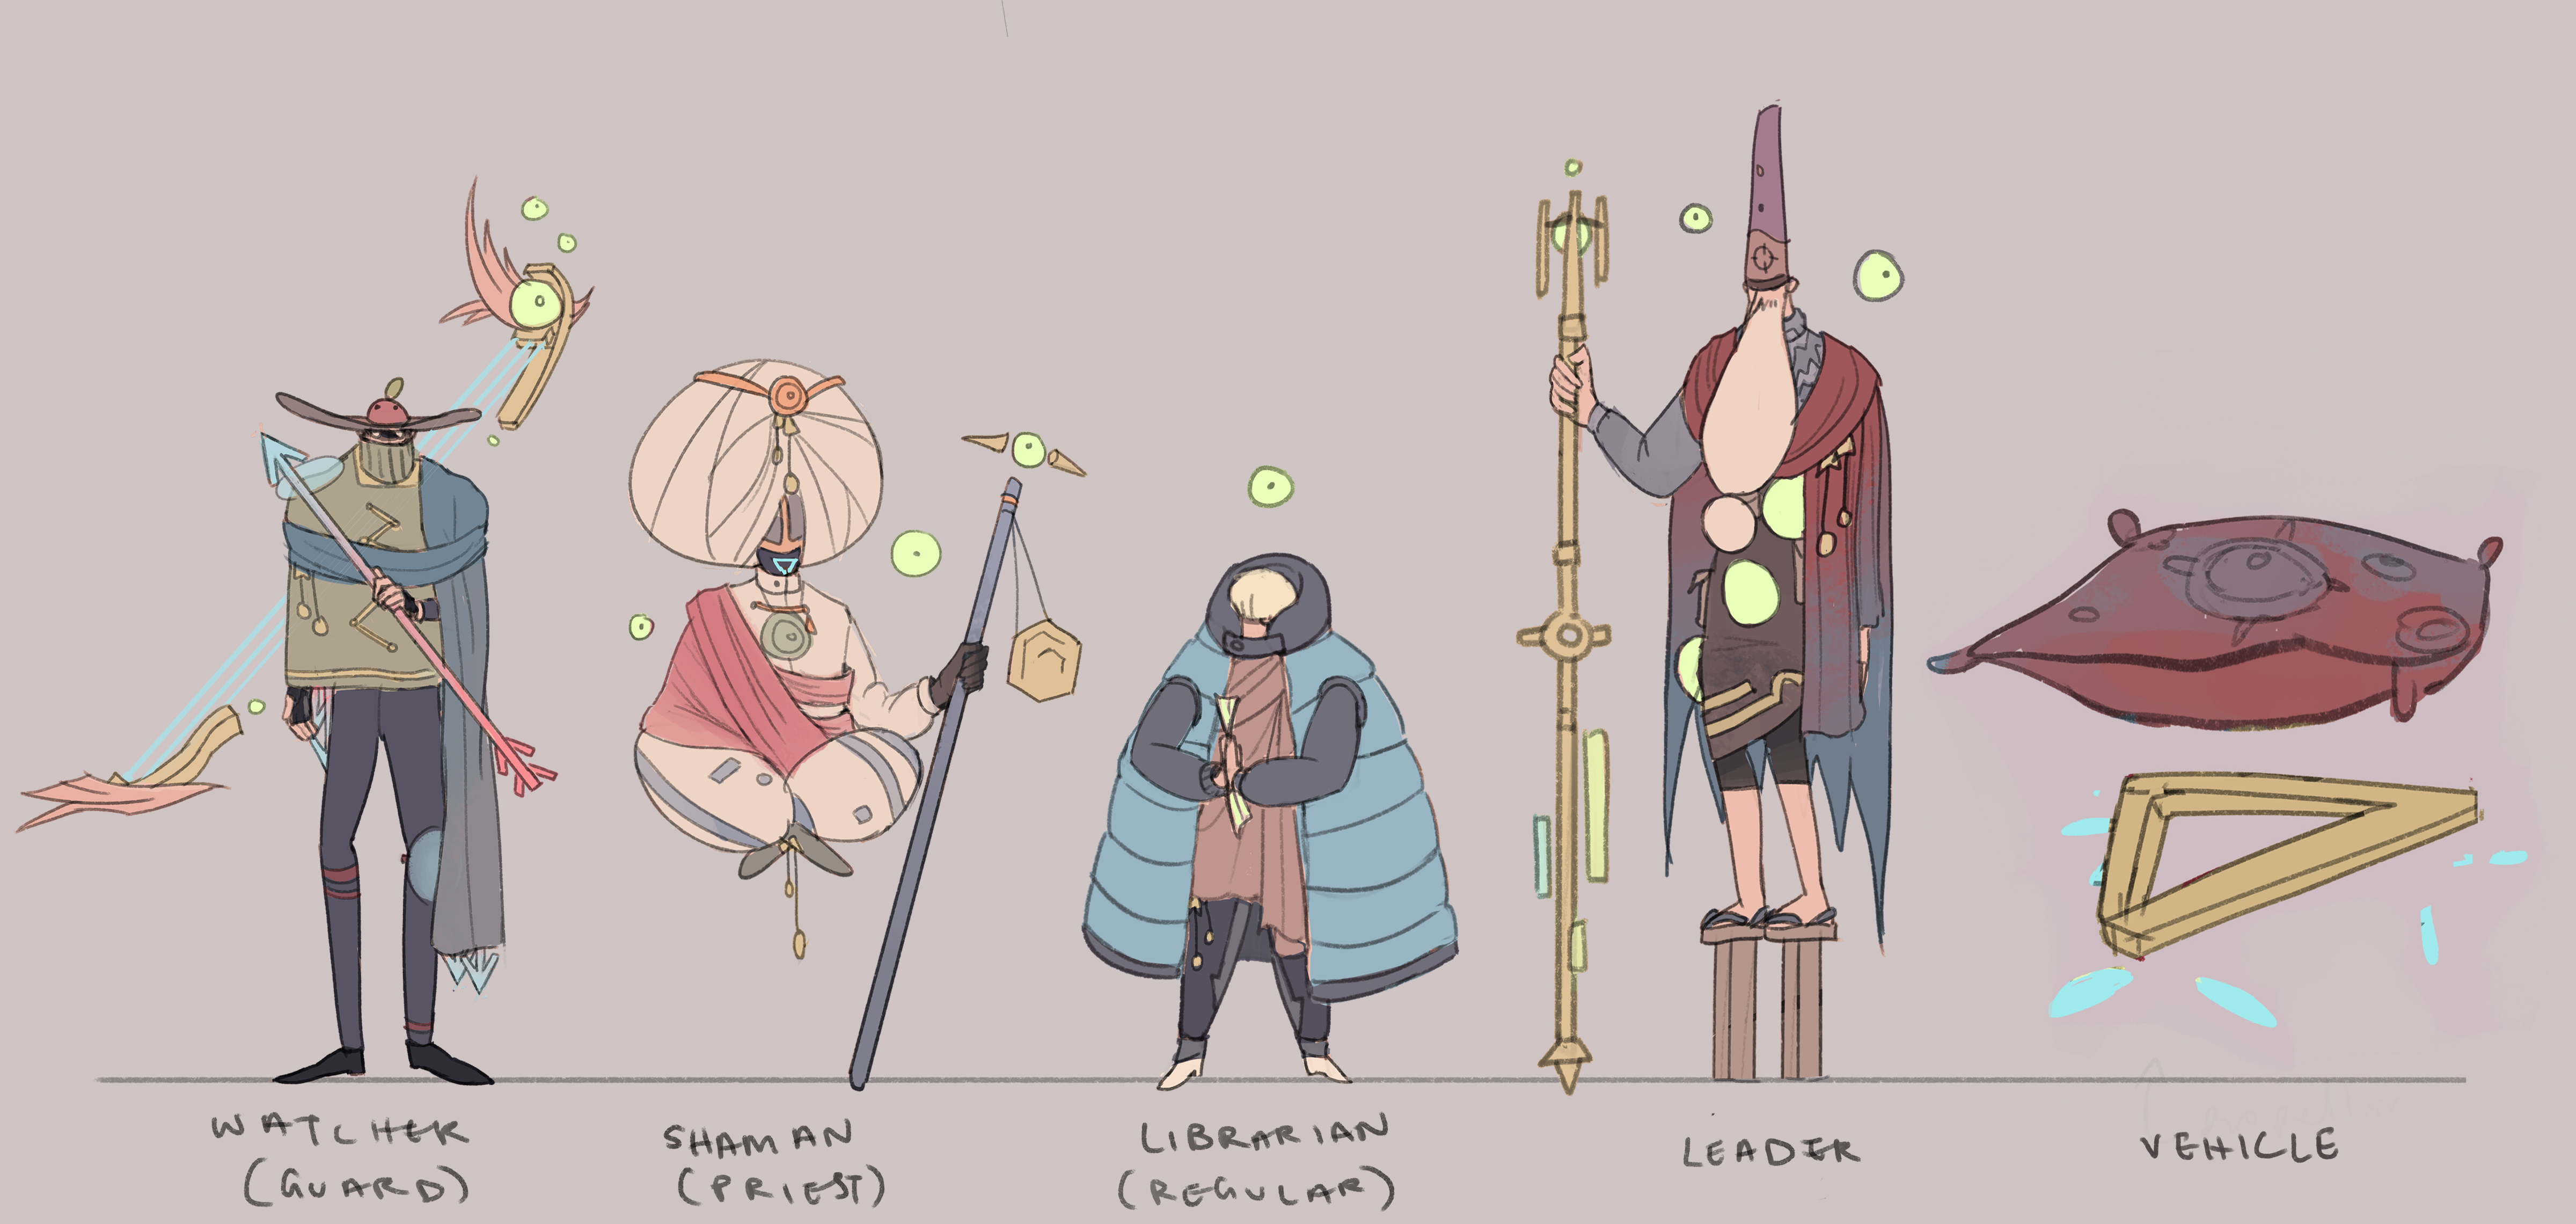 character lineup (cult people)